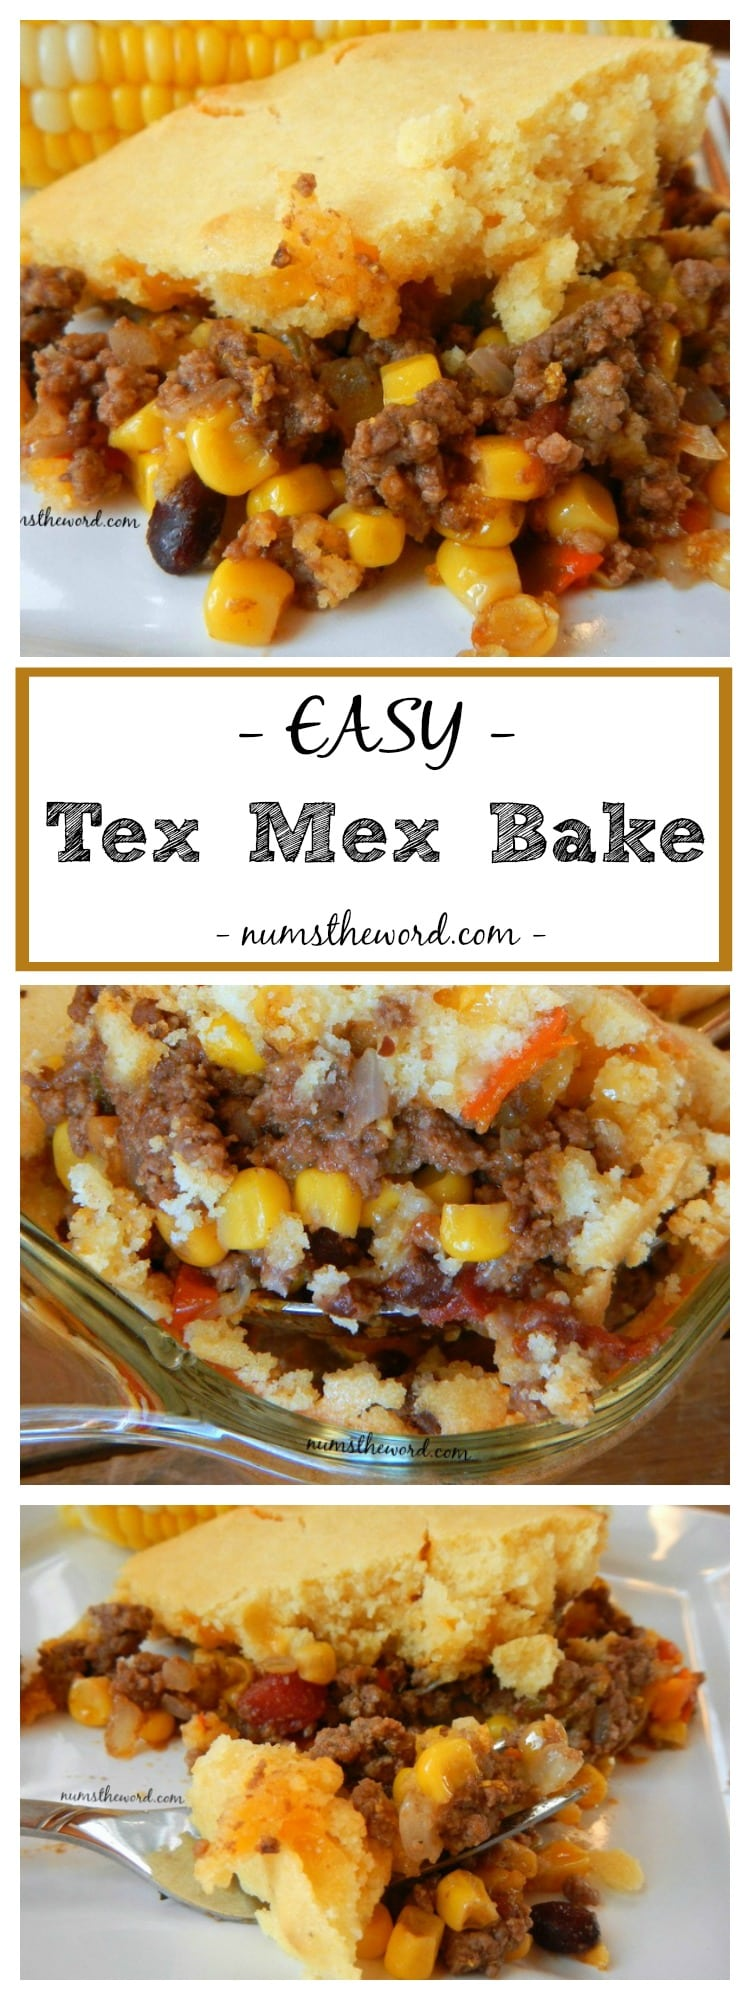 Easy Tex Mex Bake - Collage of images for Pinterest